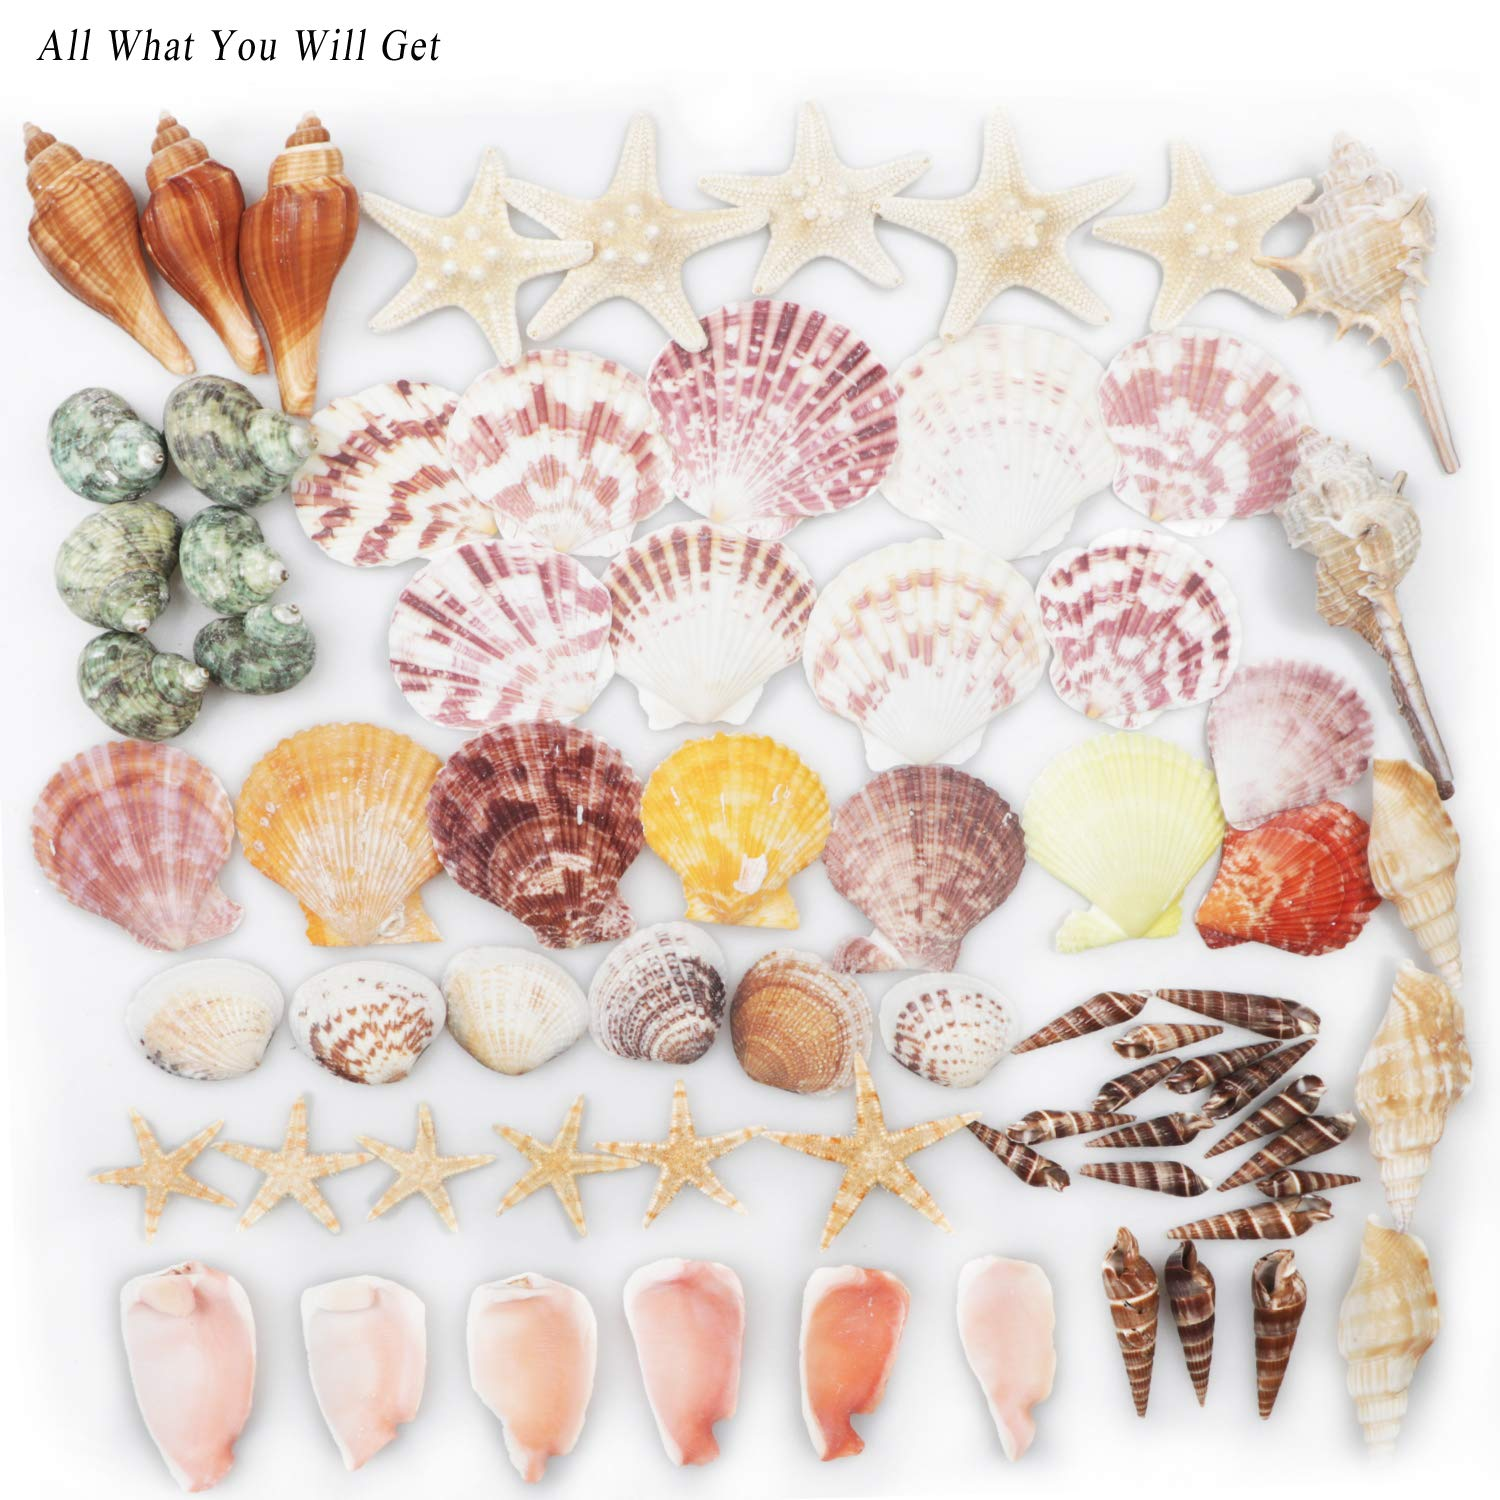 Sea Shells Mixed Beach Seashells 9 Kinds 1.2-3.5 Natural Seashells and 2 Kinds Starfish for Beach Theme Party Wedding Decorations DIY Crafts Home Decorations FishTank Supplies